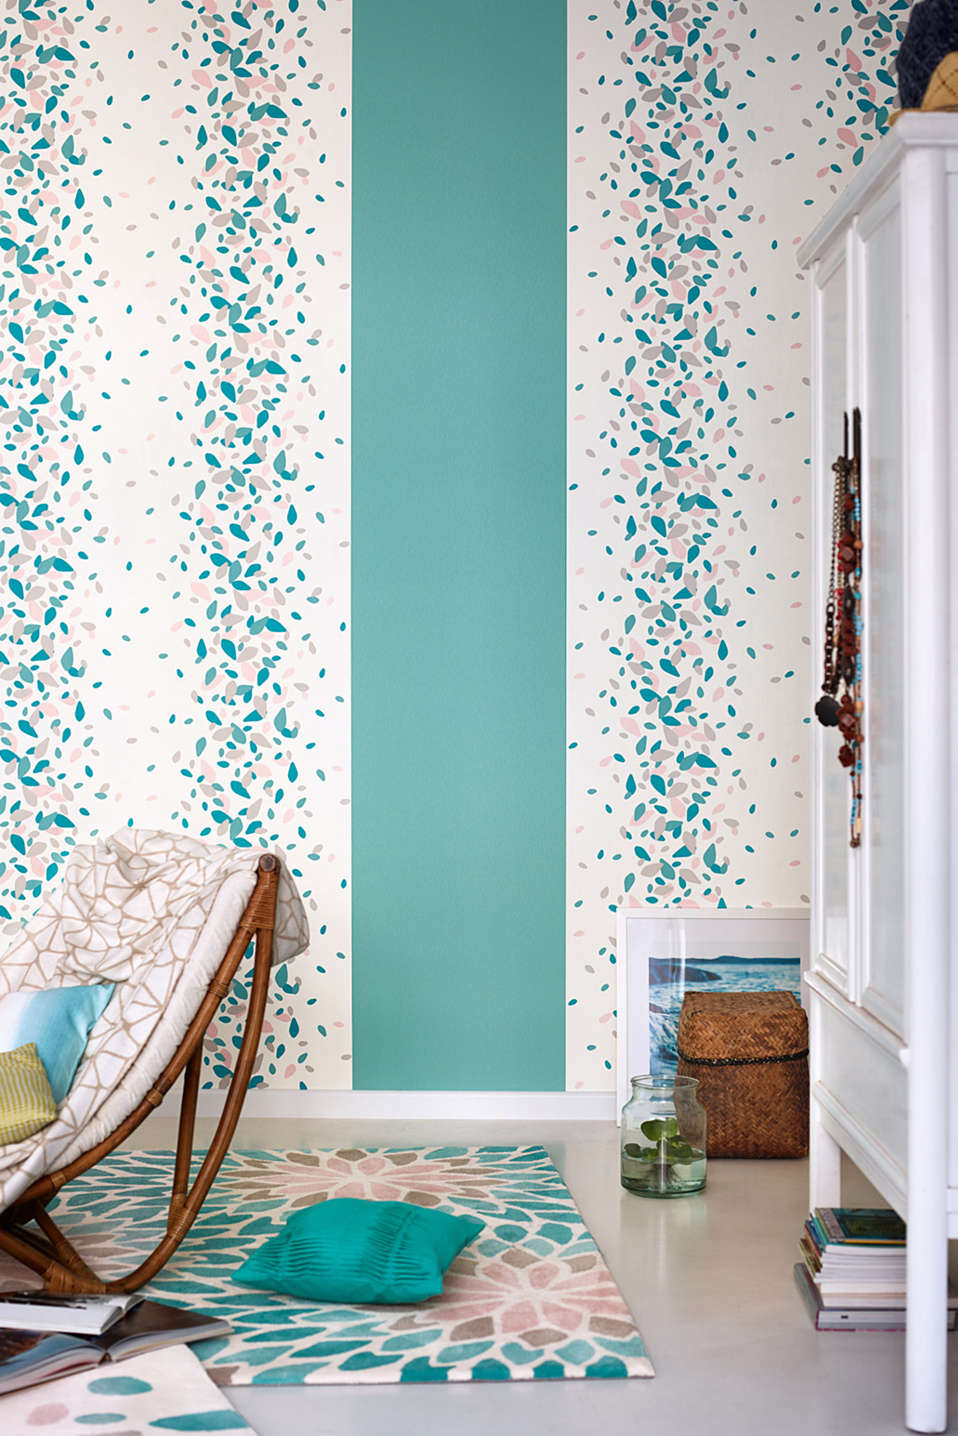 Vlies wallpaper Deep Summer Patterned